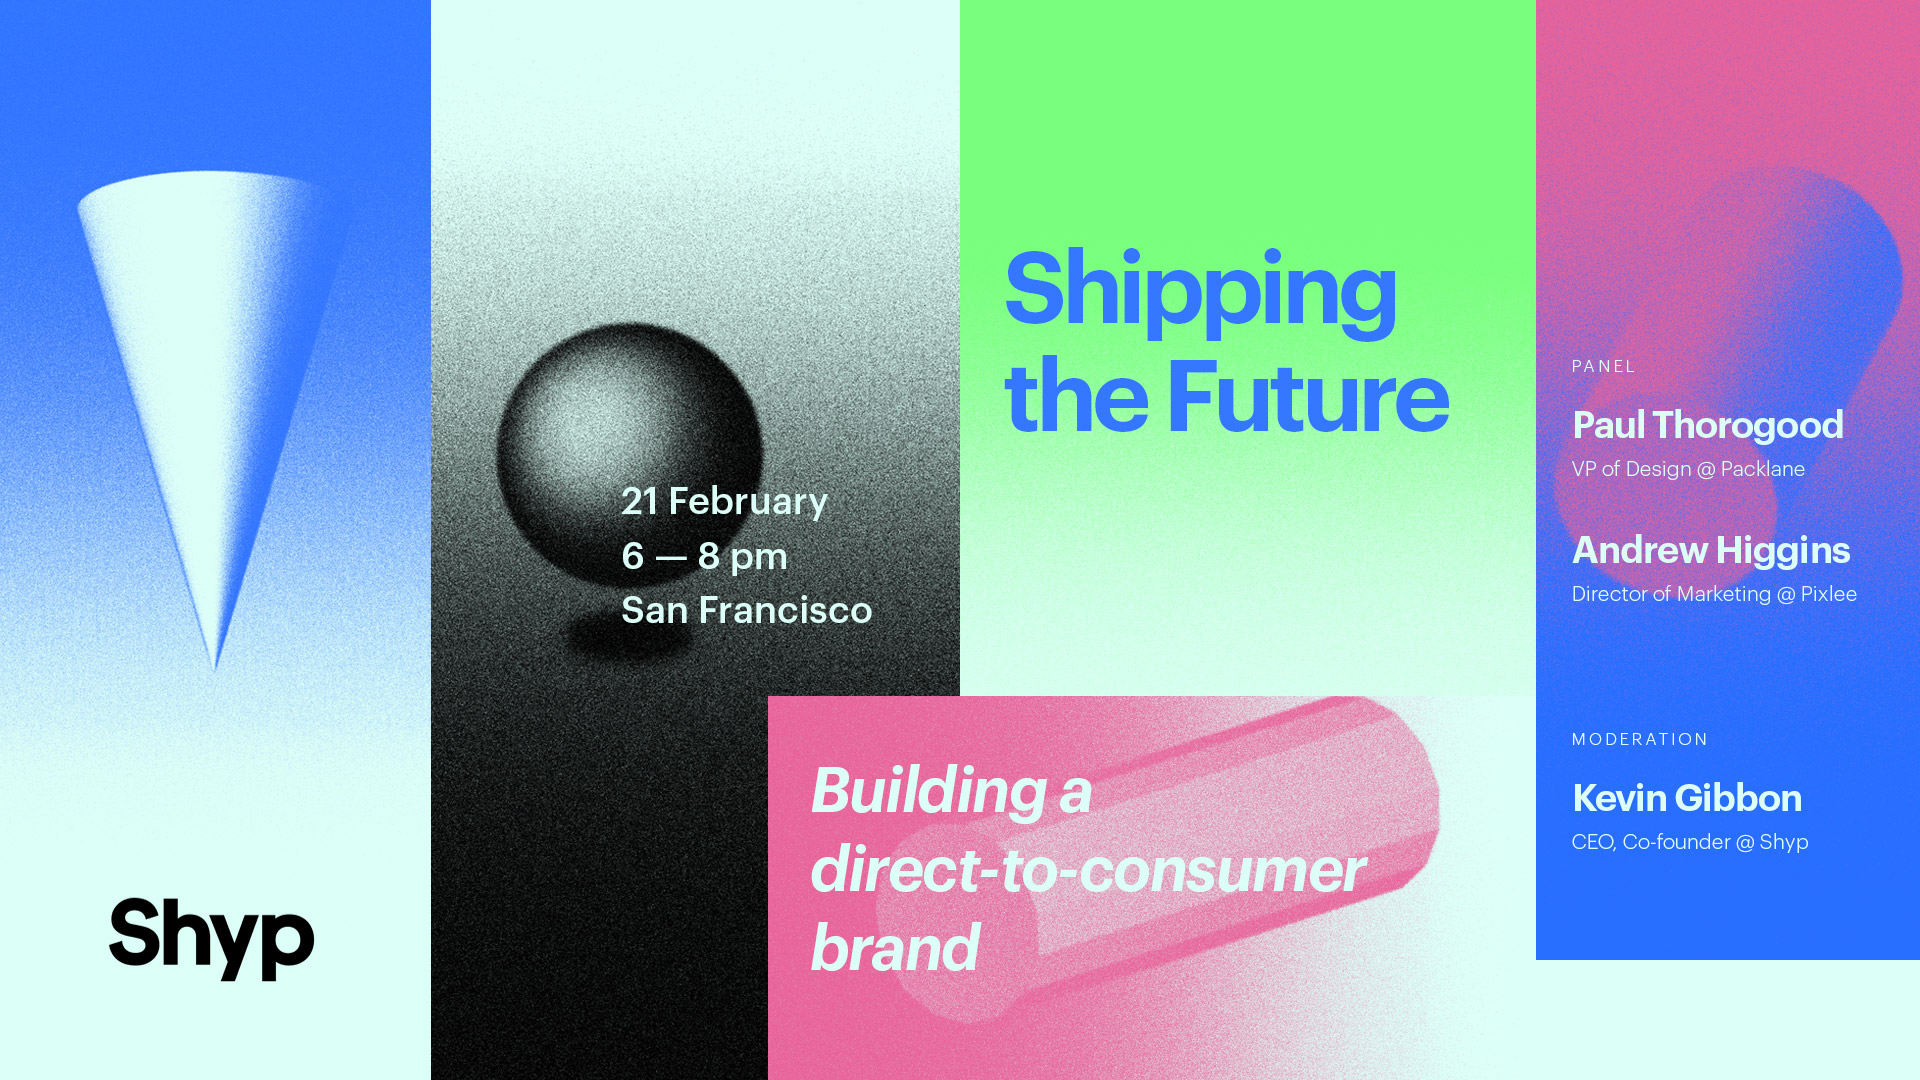 Shipping the Future branding